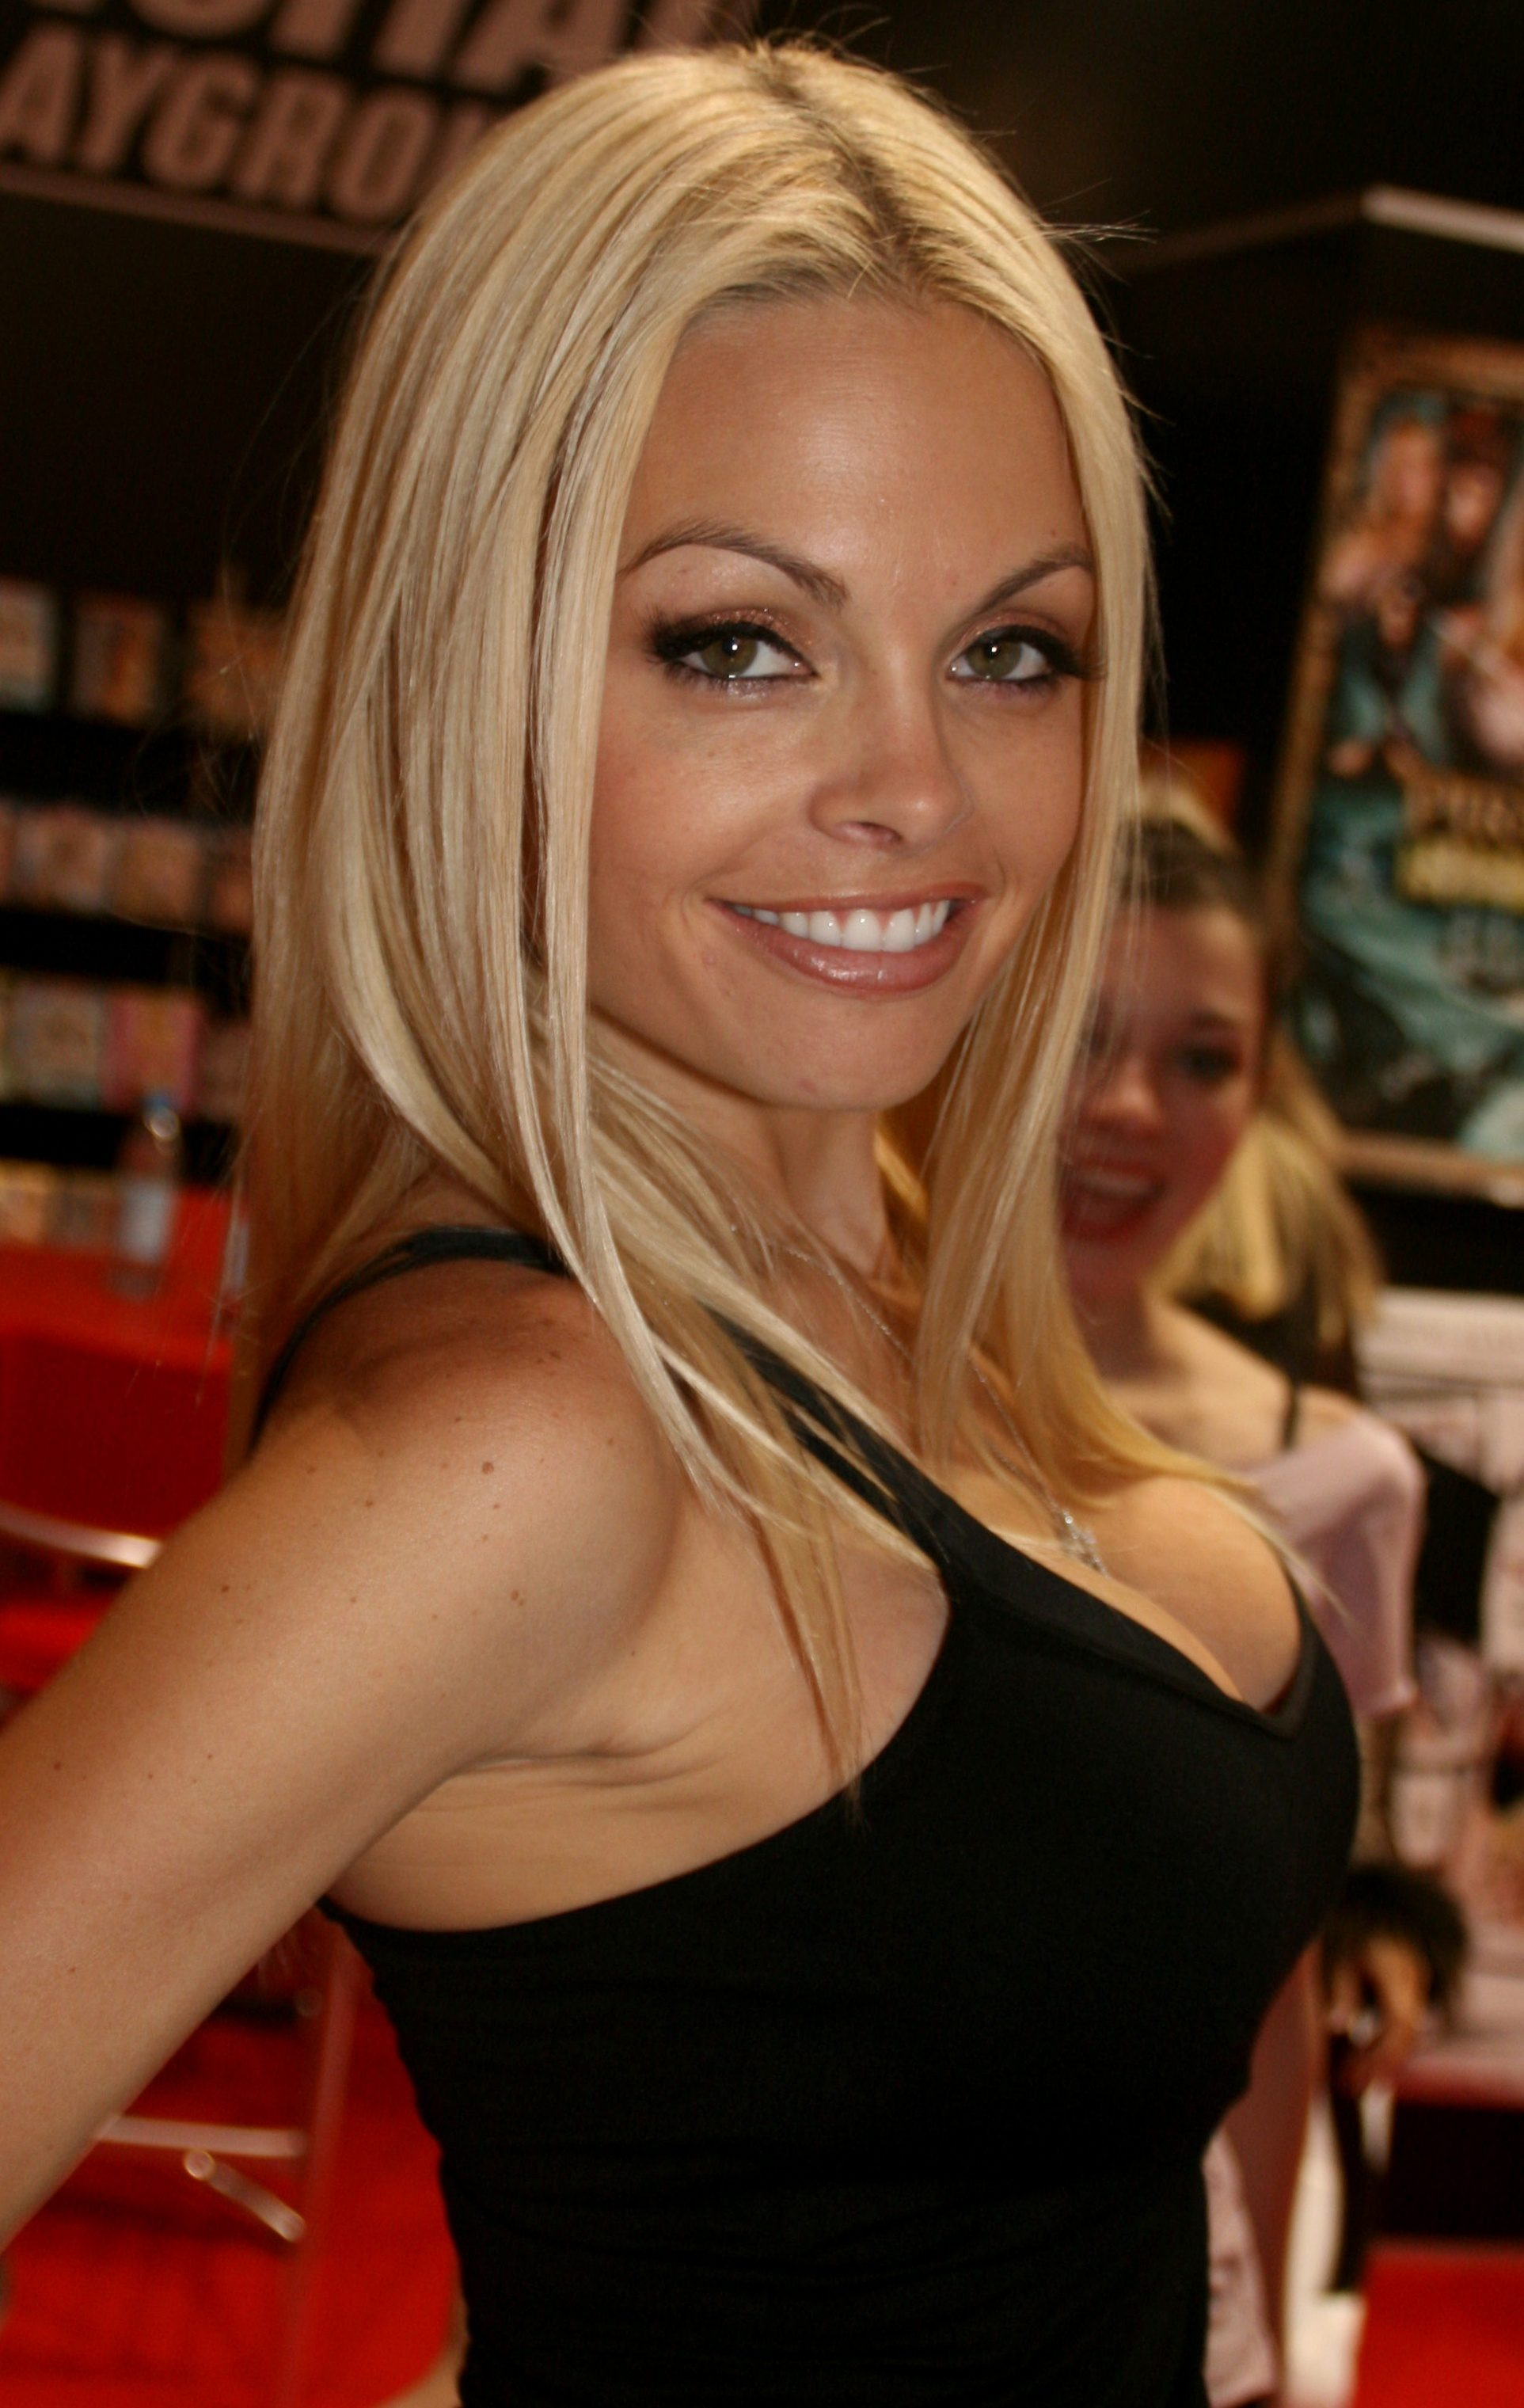 Jesse Jane became the most famous and rich US porn star without doing anal.  She did a couple after she was a superstar and because she wanted.